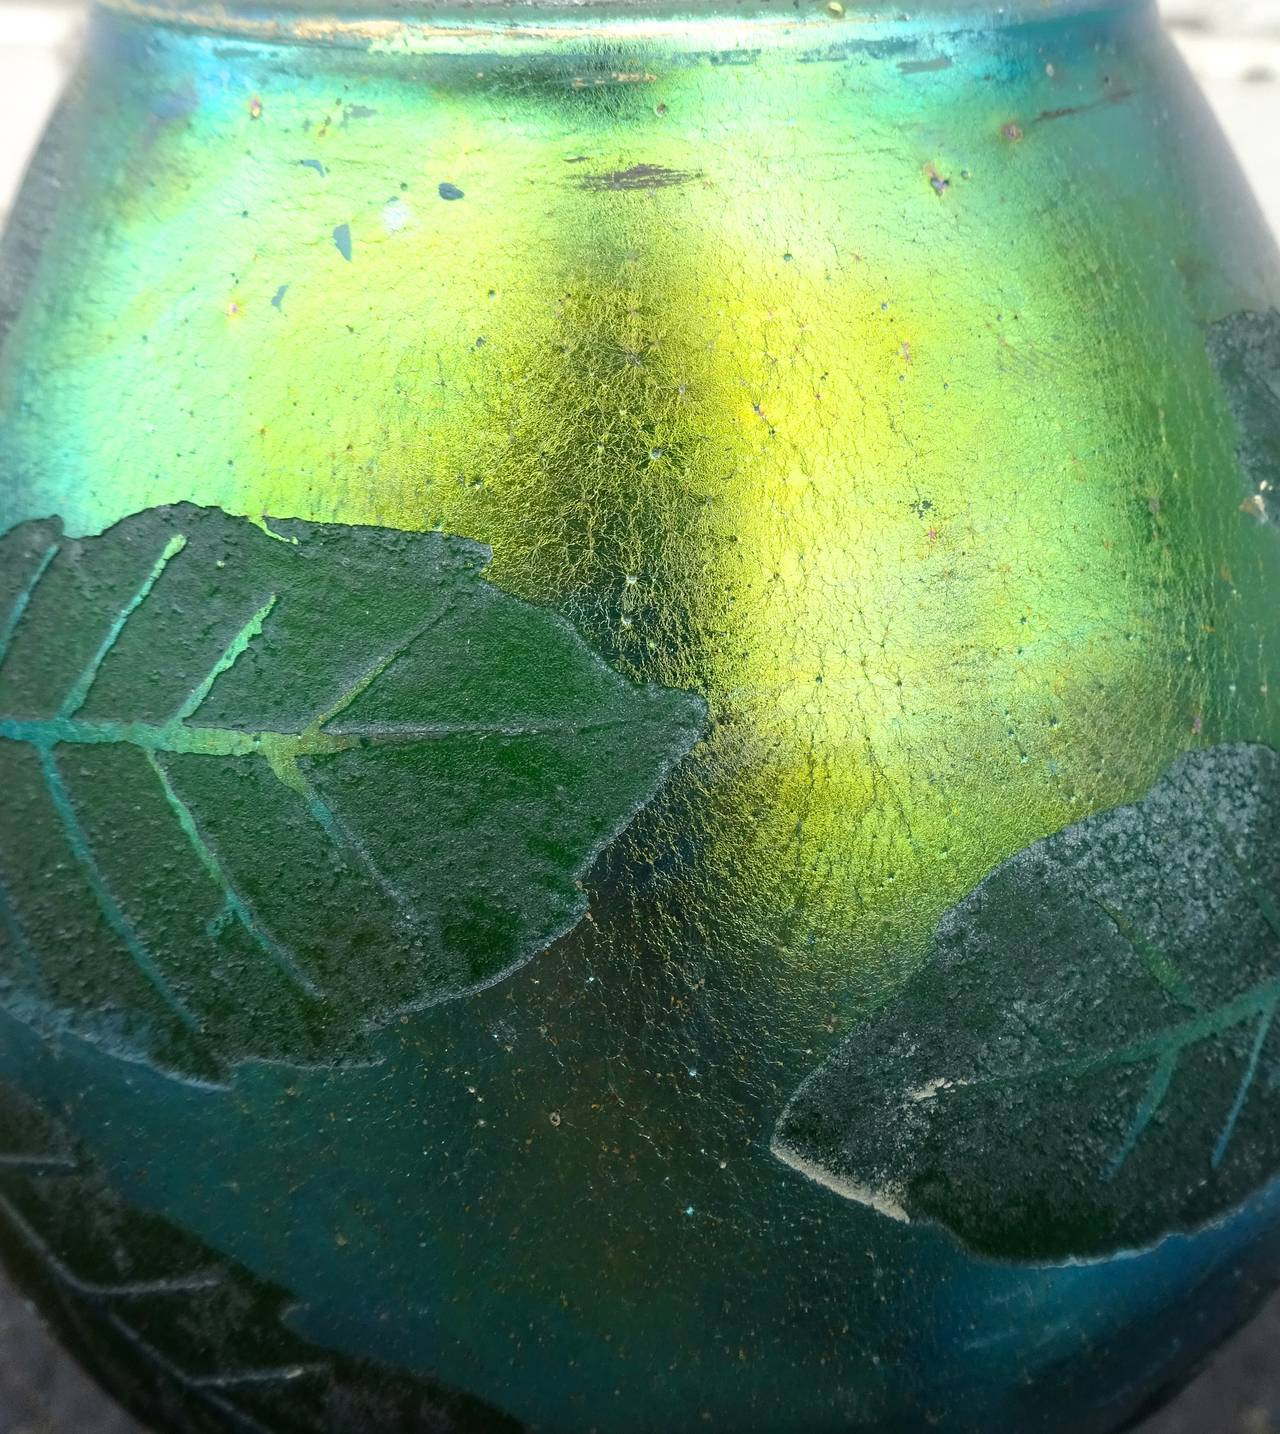 French Deco Iridescent Acid-Etched Art Glass Vase, 1920s For Sale 5